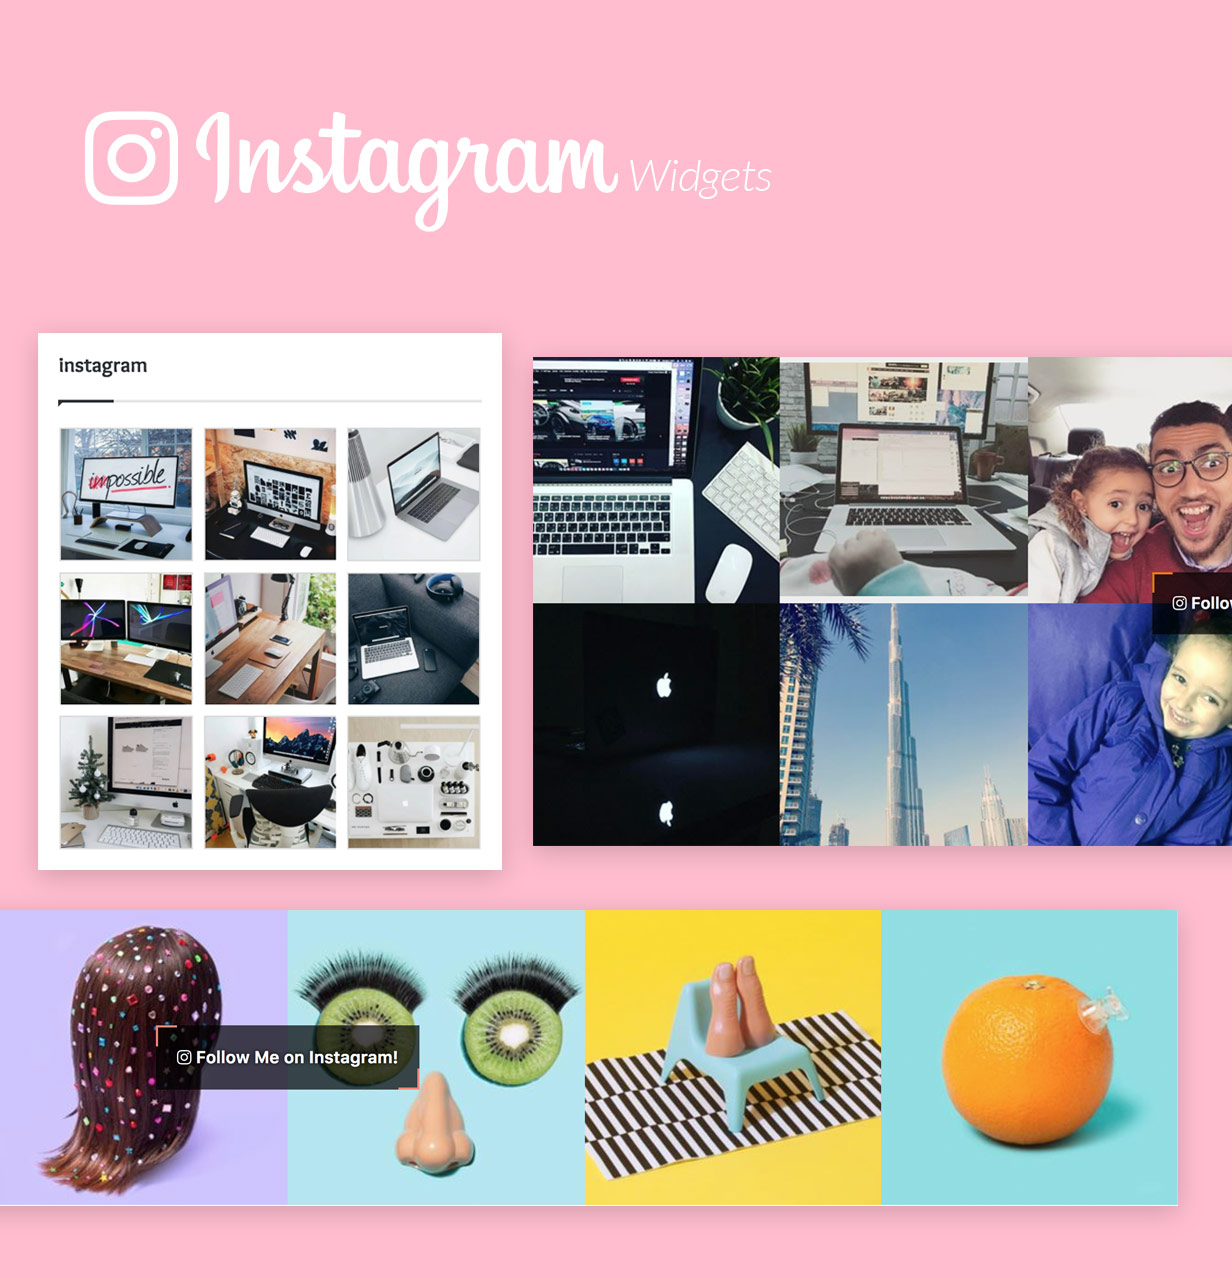 Instagram Widgets